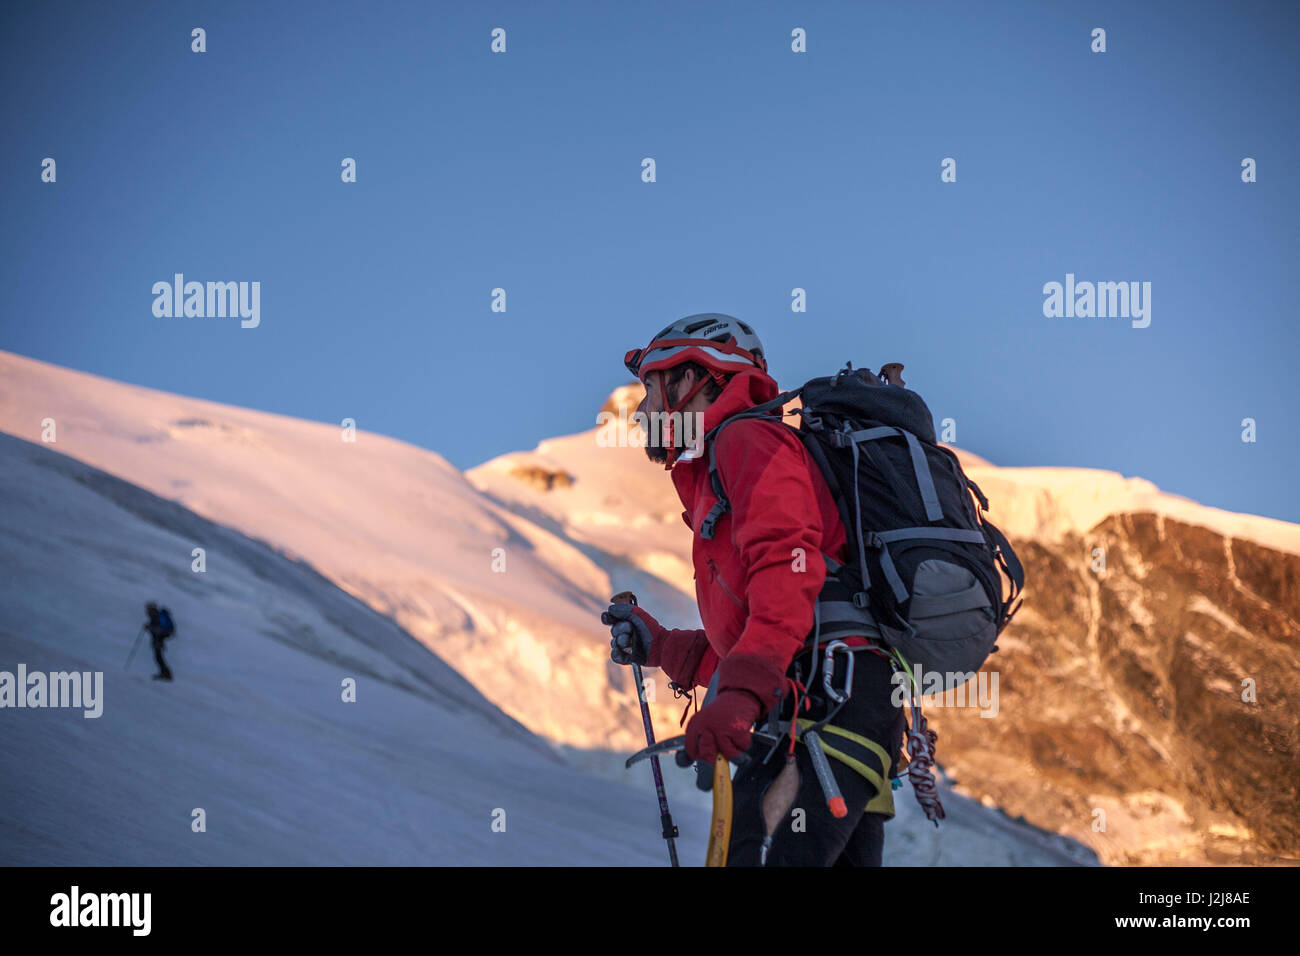 1 person, trekking, way up to the summit, approach, view forward, scenery, summit, glacier, silence, adventure, - Stock Image